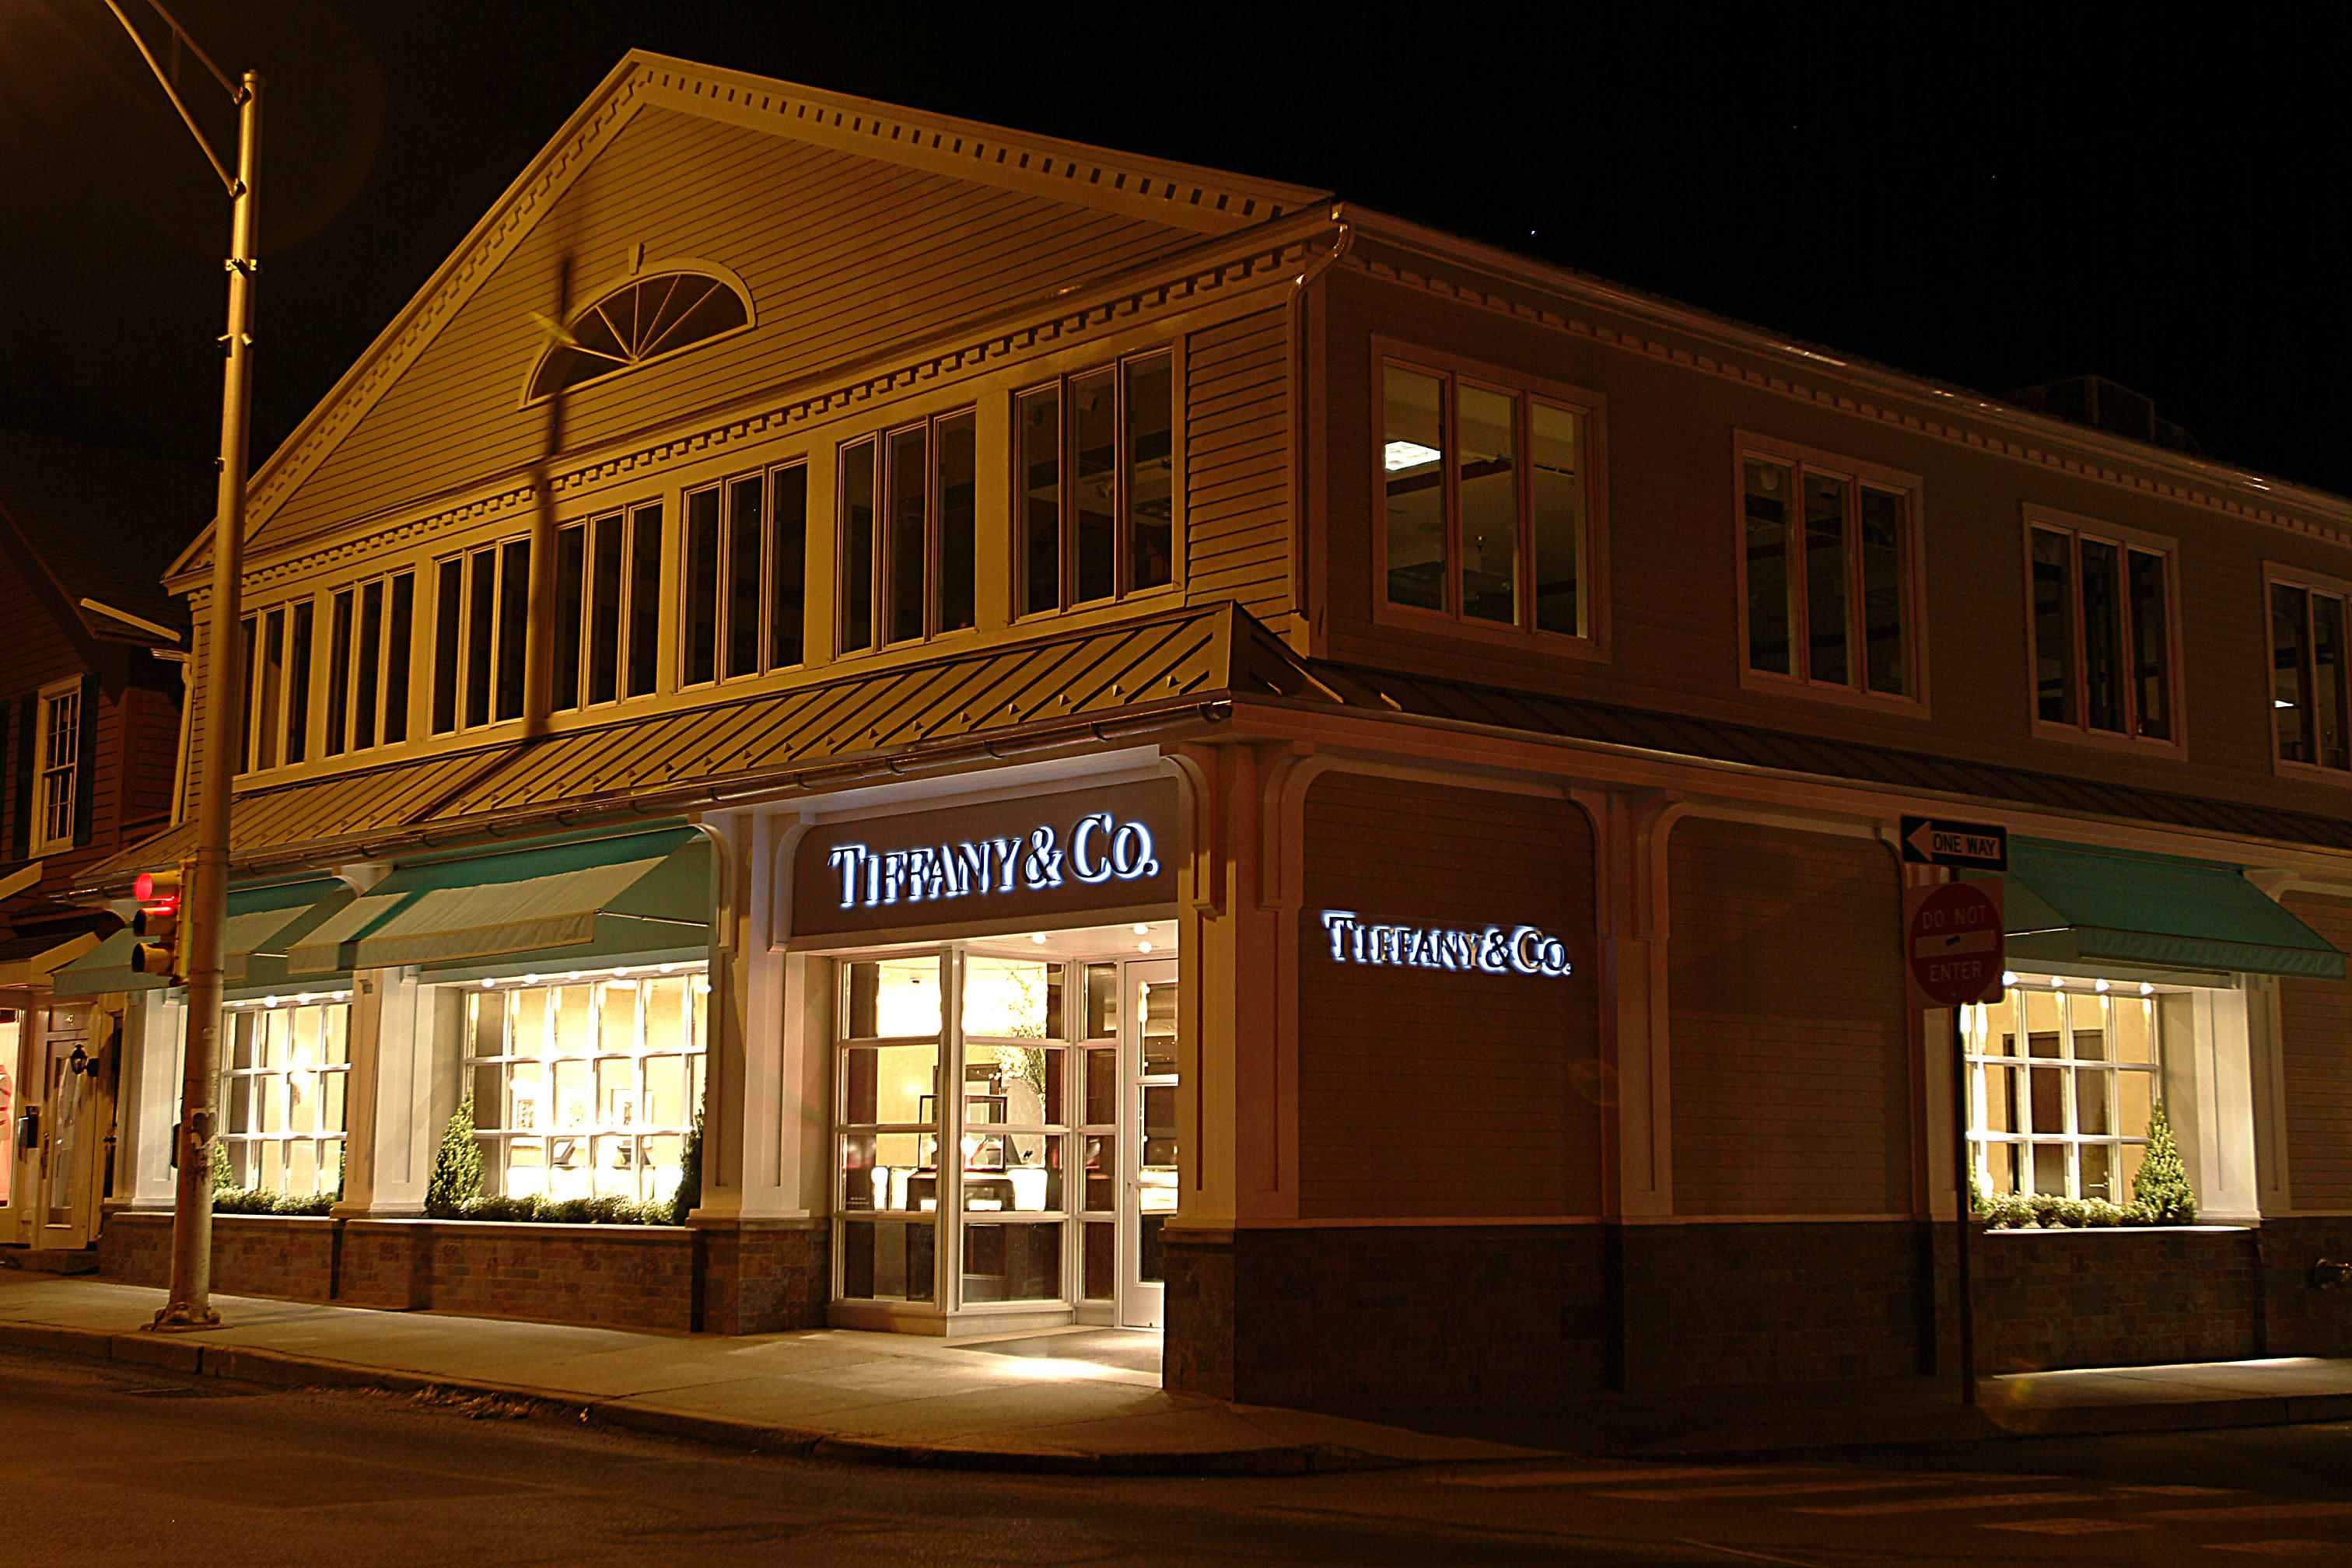 tiffany co in westport ct 06880